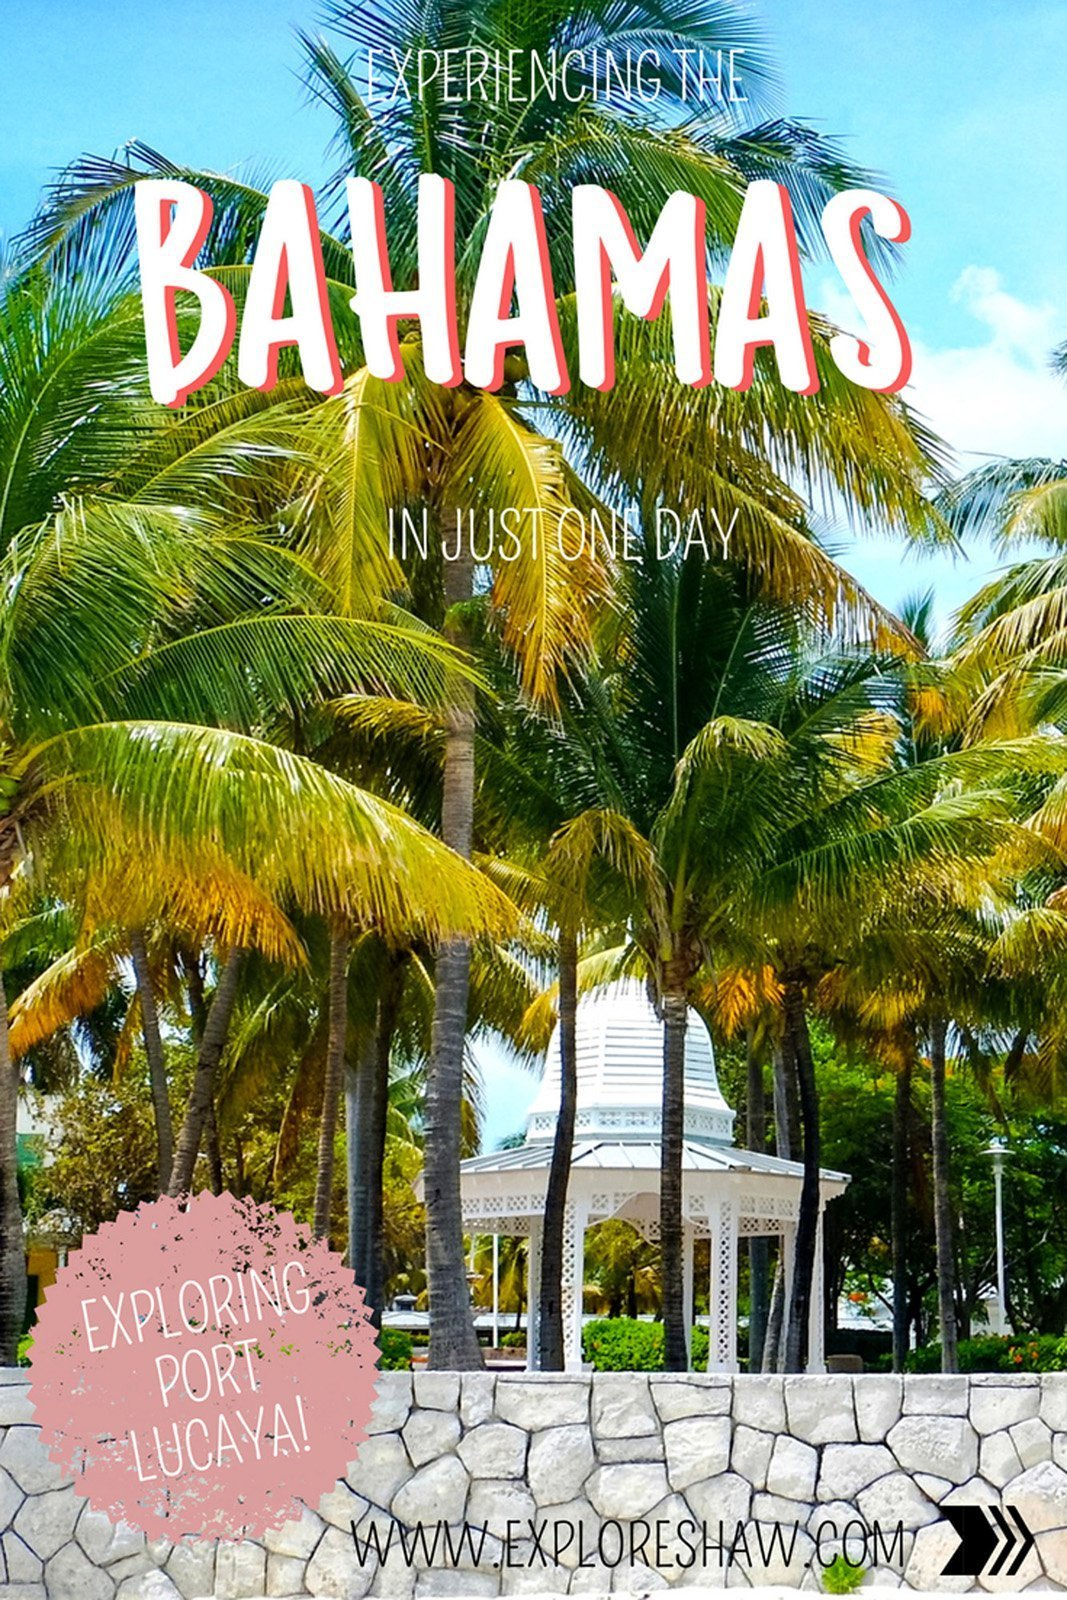 EXPERIENCING THE BAHAMAS IN JUST ONE DAY